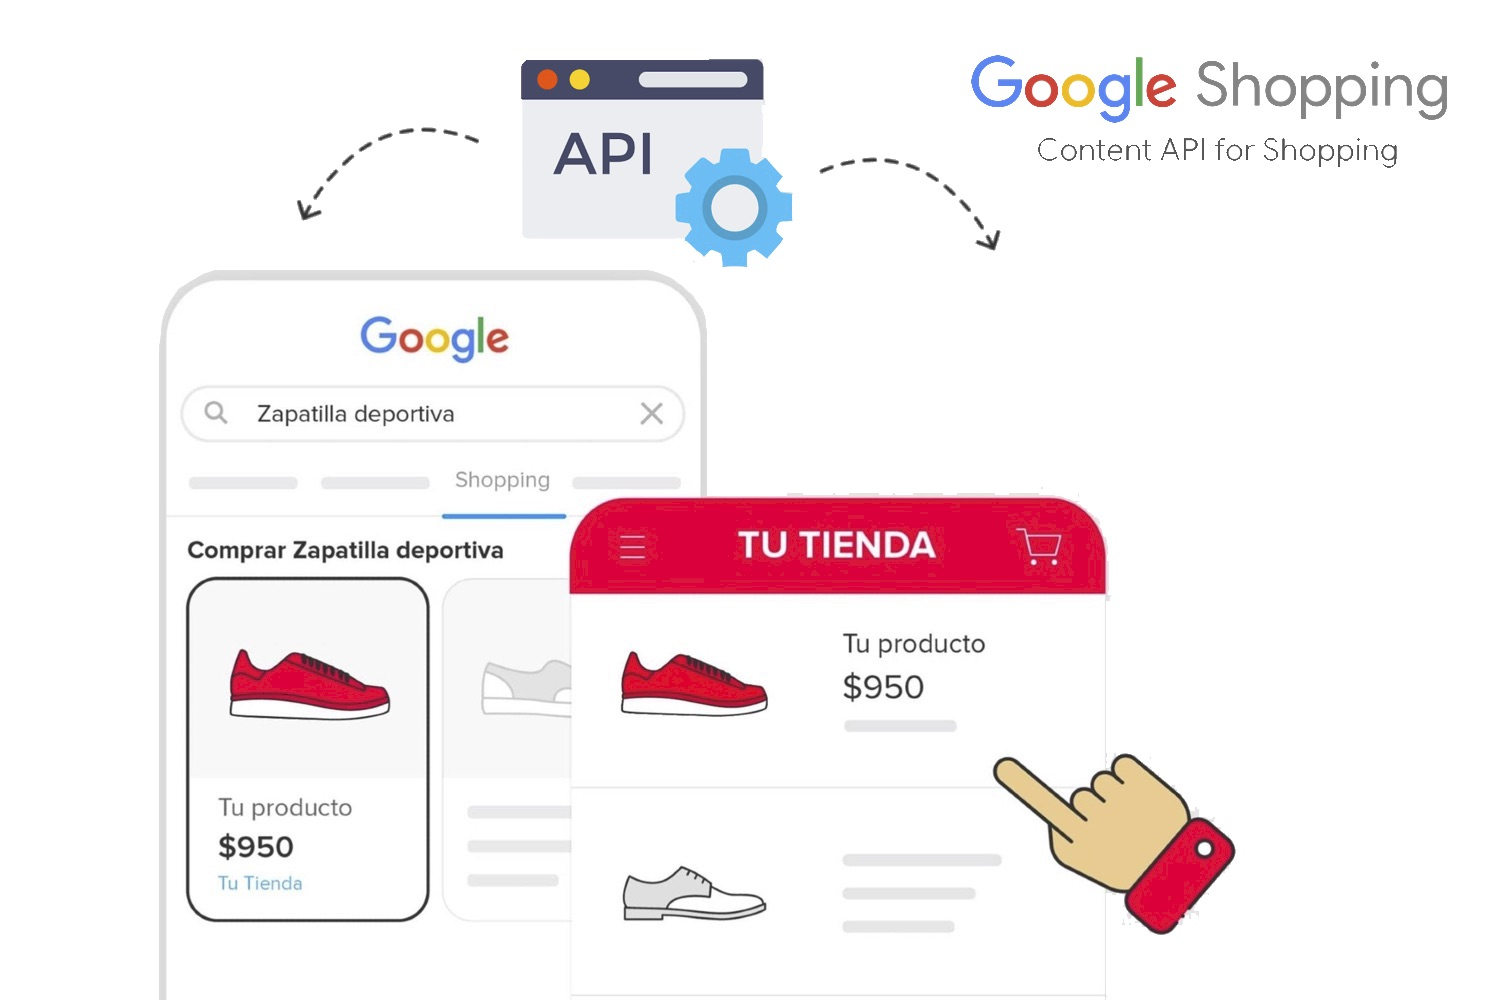 google shopping api, content api for shopping